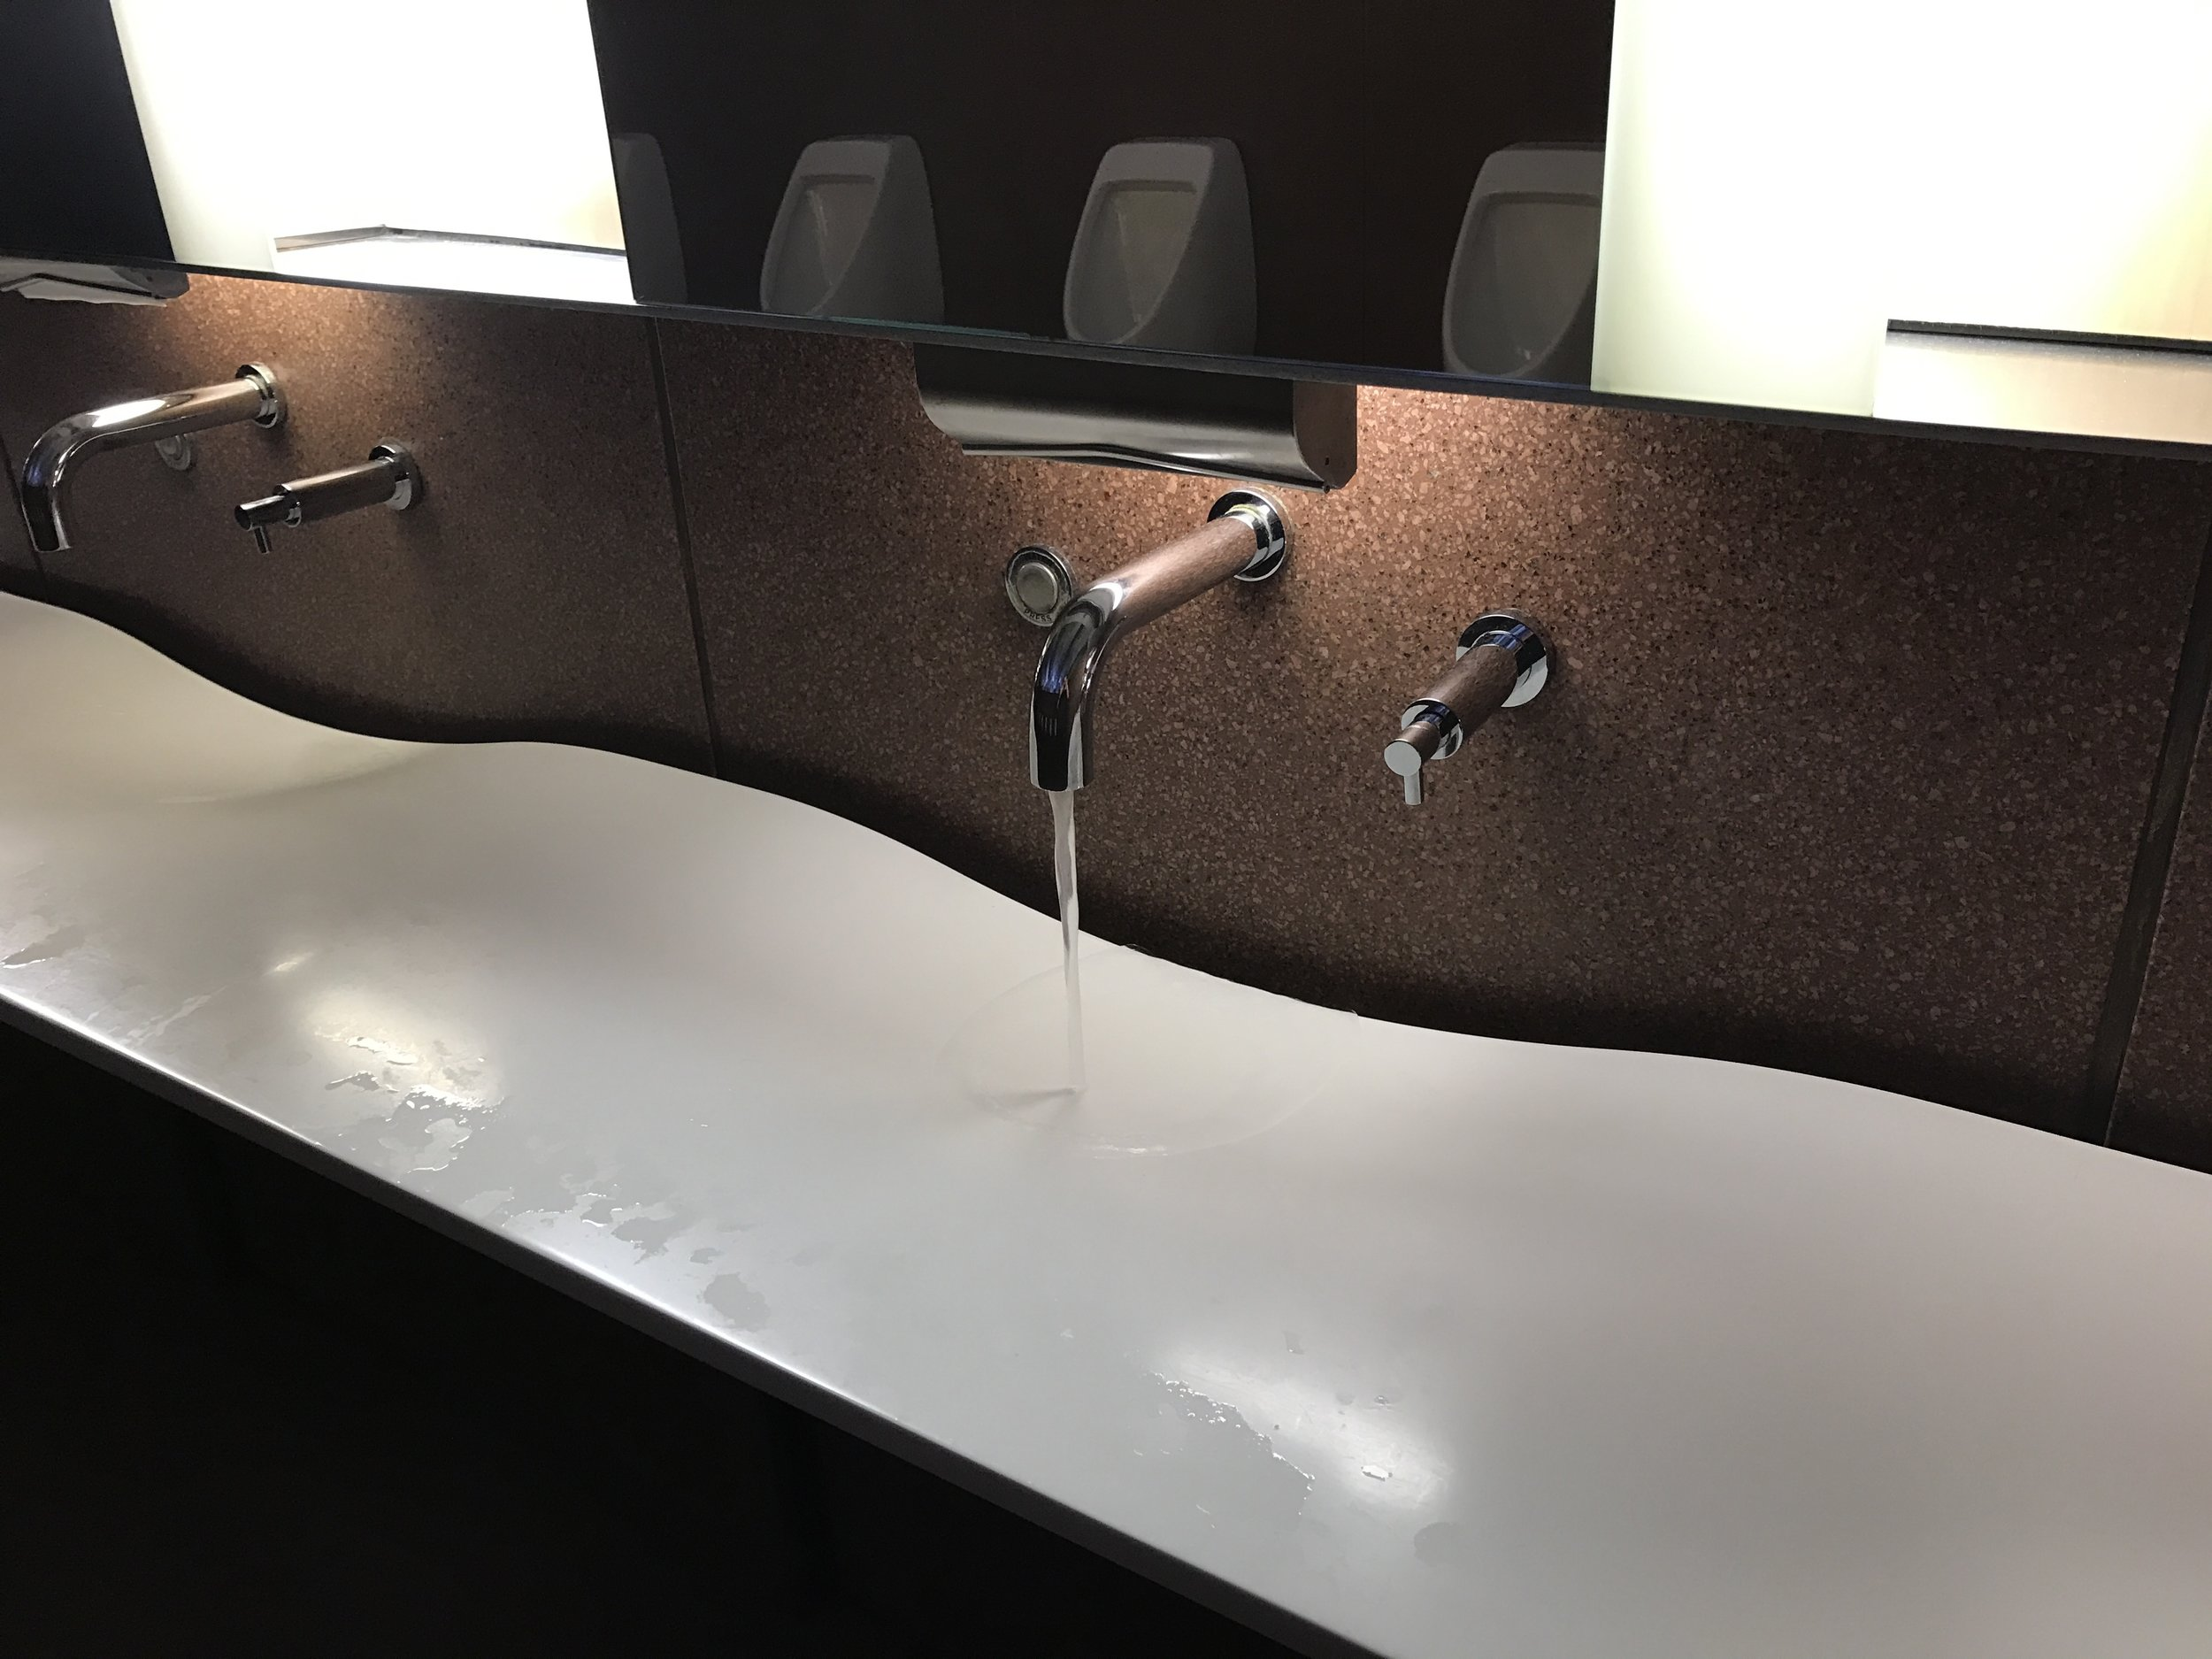 The bathrooms had a lot of neat designs, including this sink.